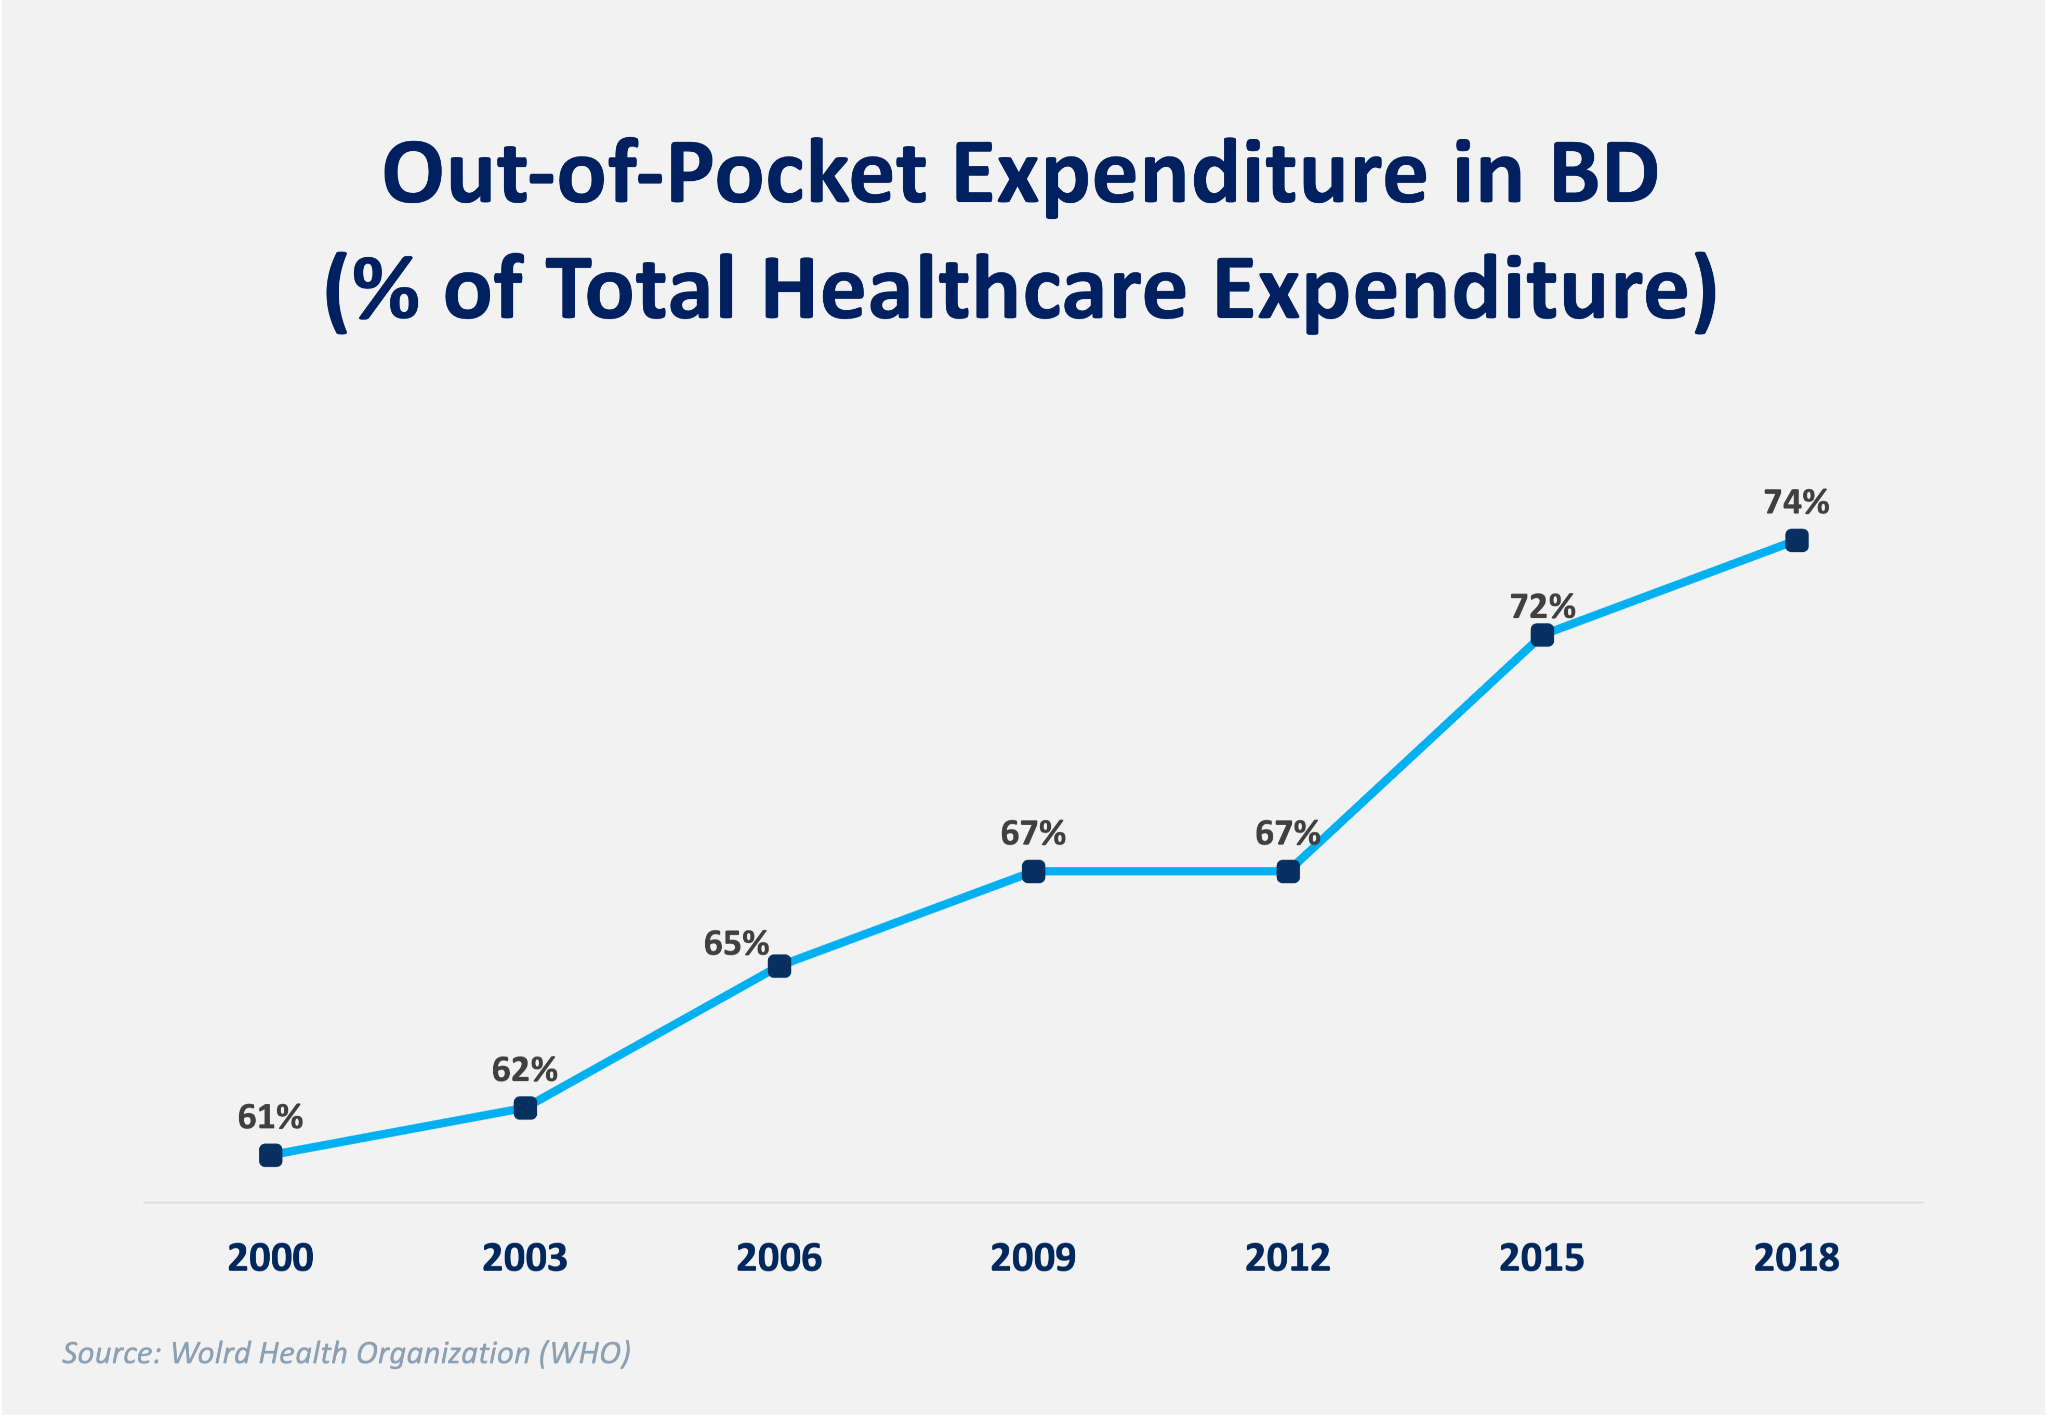 Figure: Trend in out-of-pocket expenditure as a % of total healthcare expenditure (2000 - 2018)